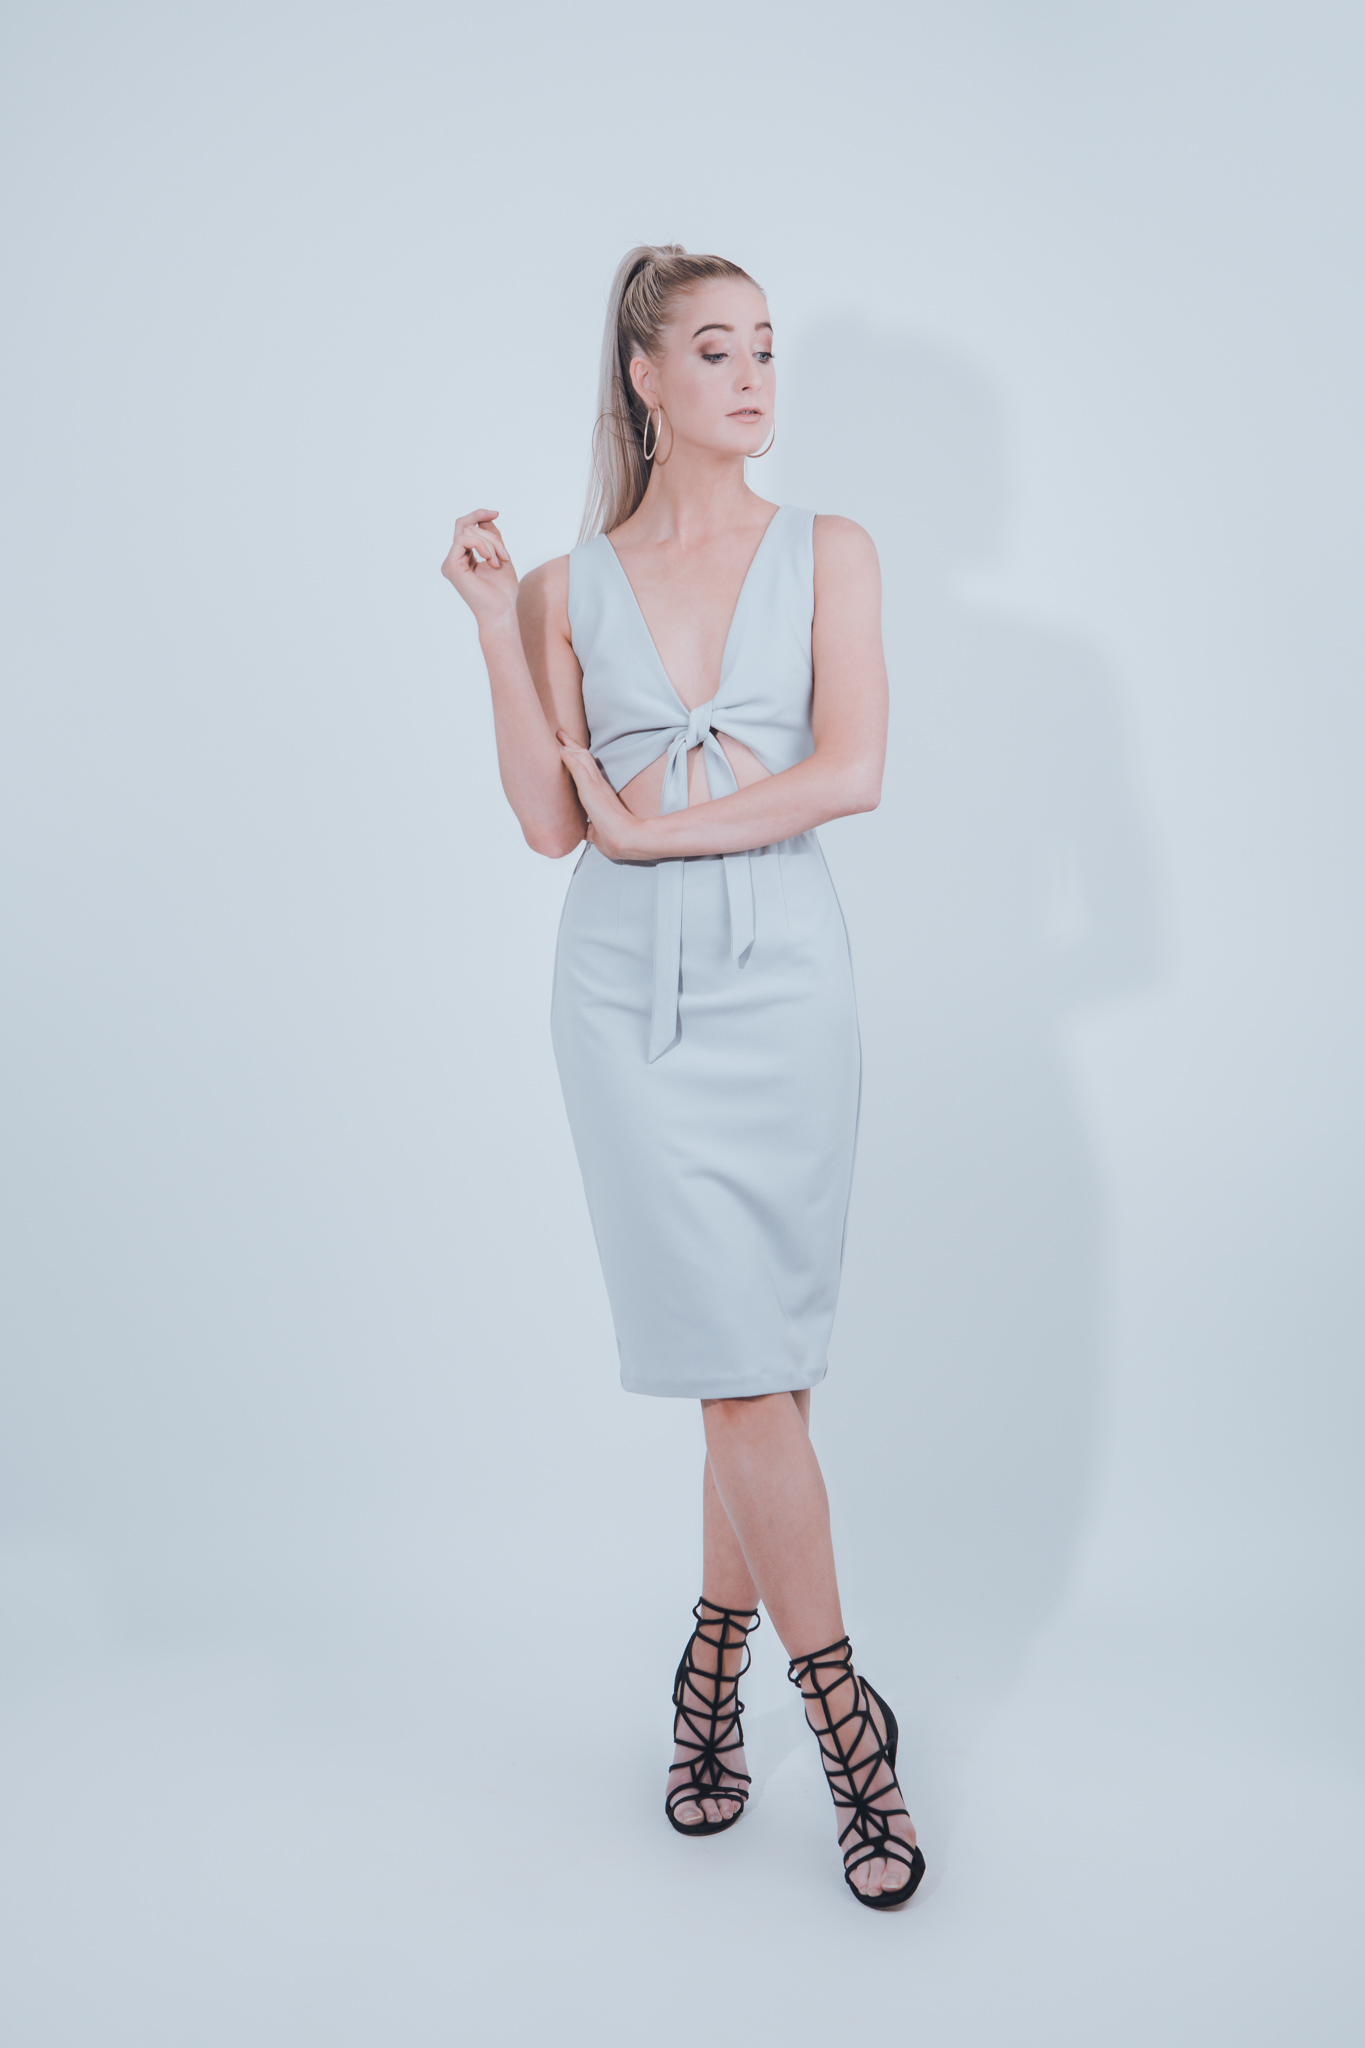 Photographing a lookbook for fashion label - outfits